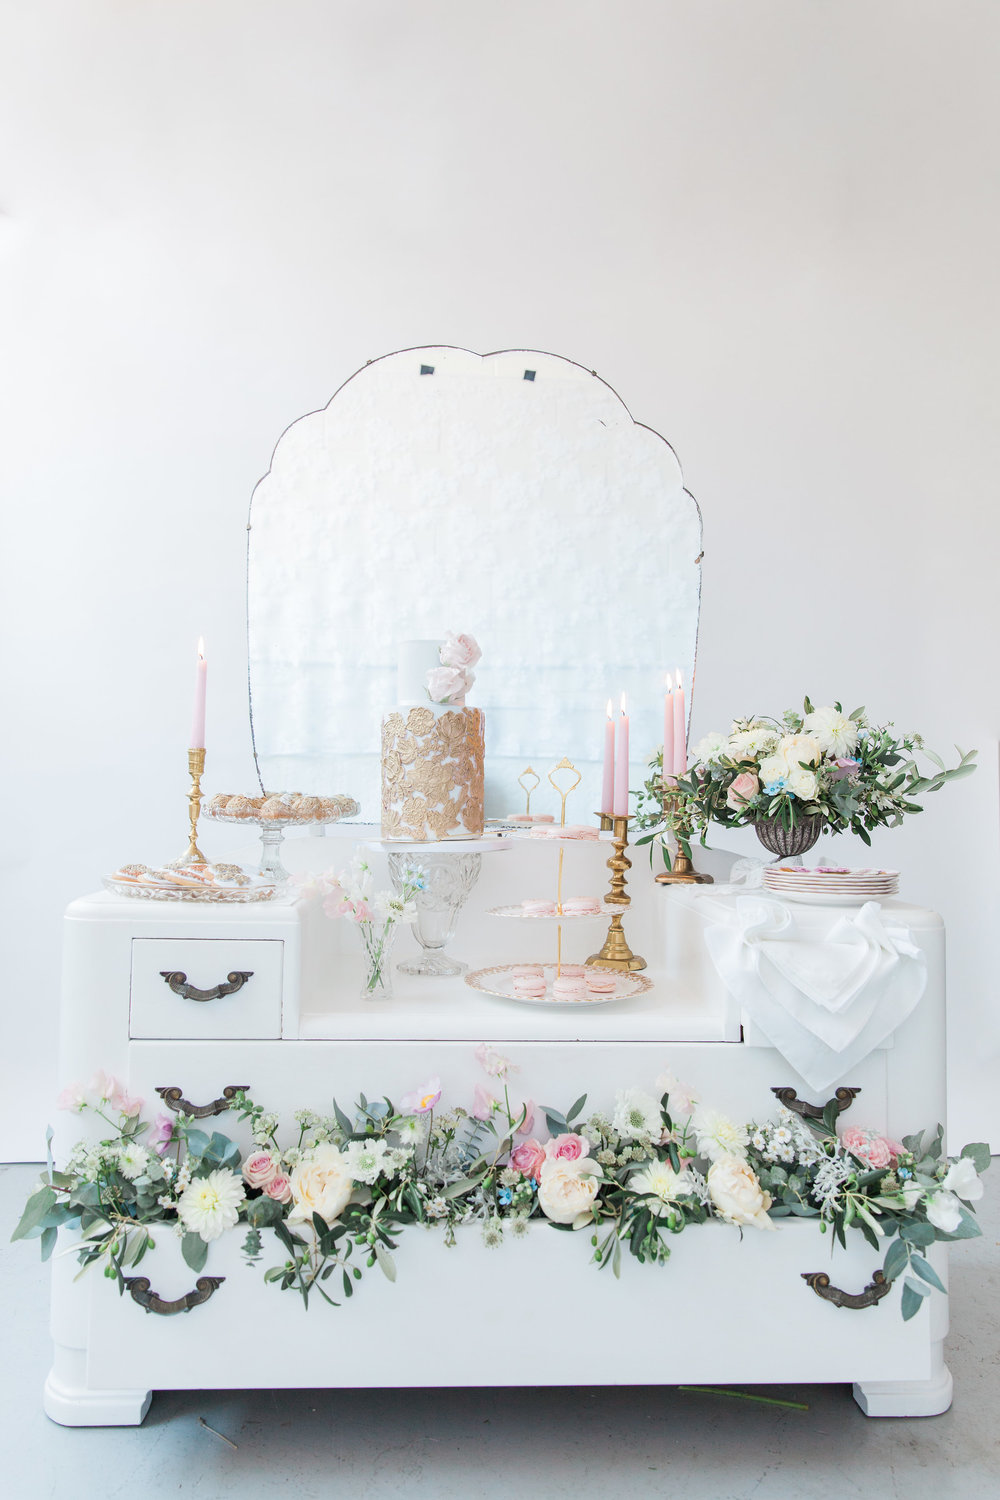 Vintage Amy Wedding Styling-Modern Vintage Wedding London-Vintage Dressing Table Cake Table